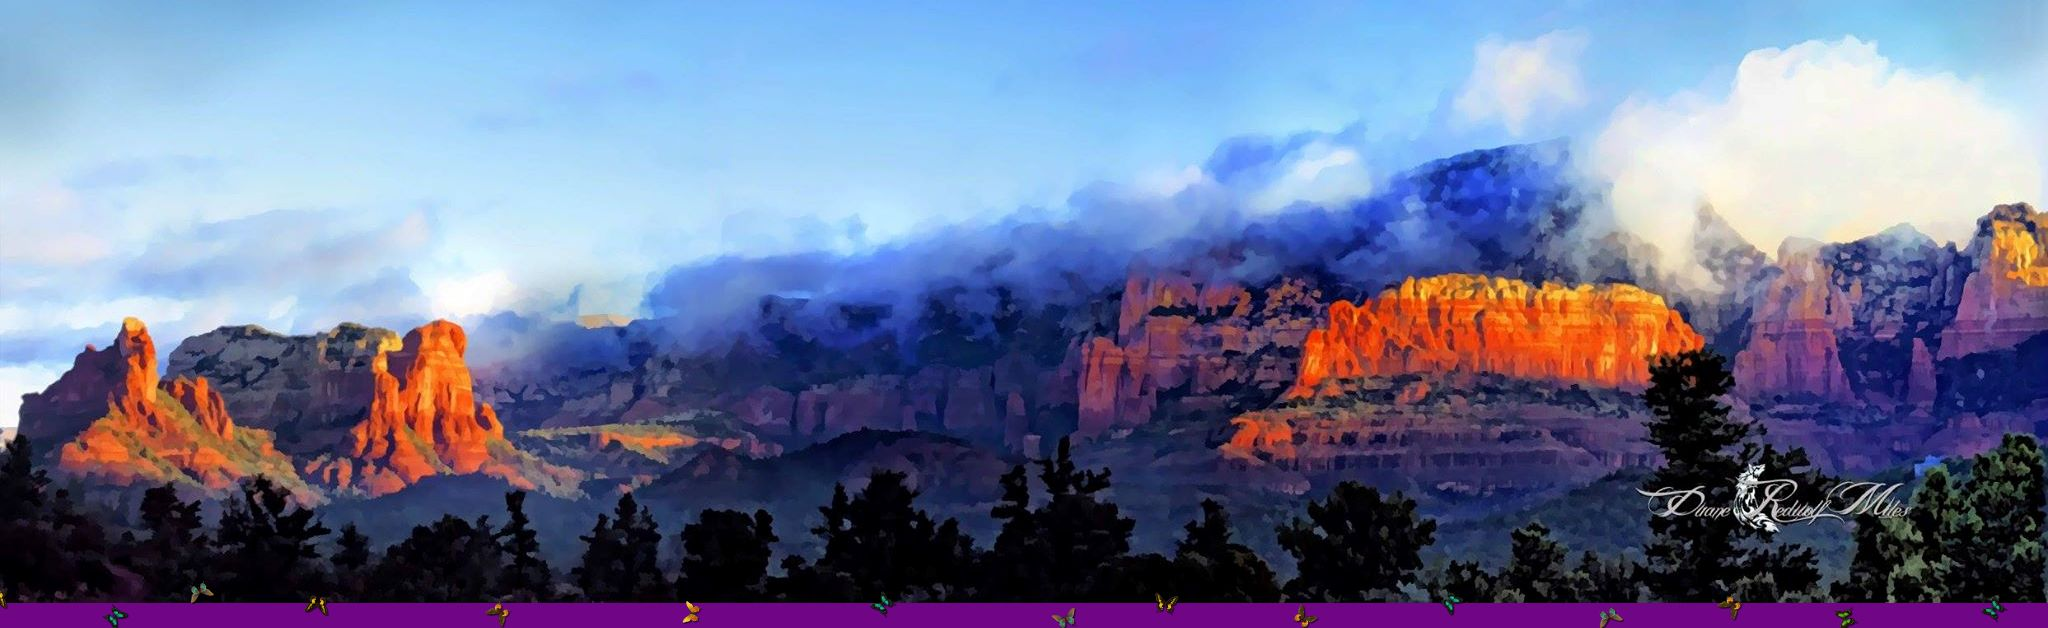 Oak Creek Canyon Sedona Arizona